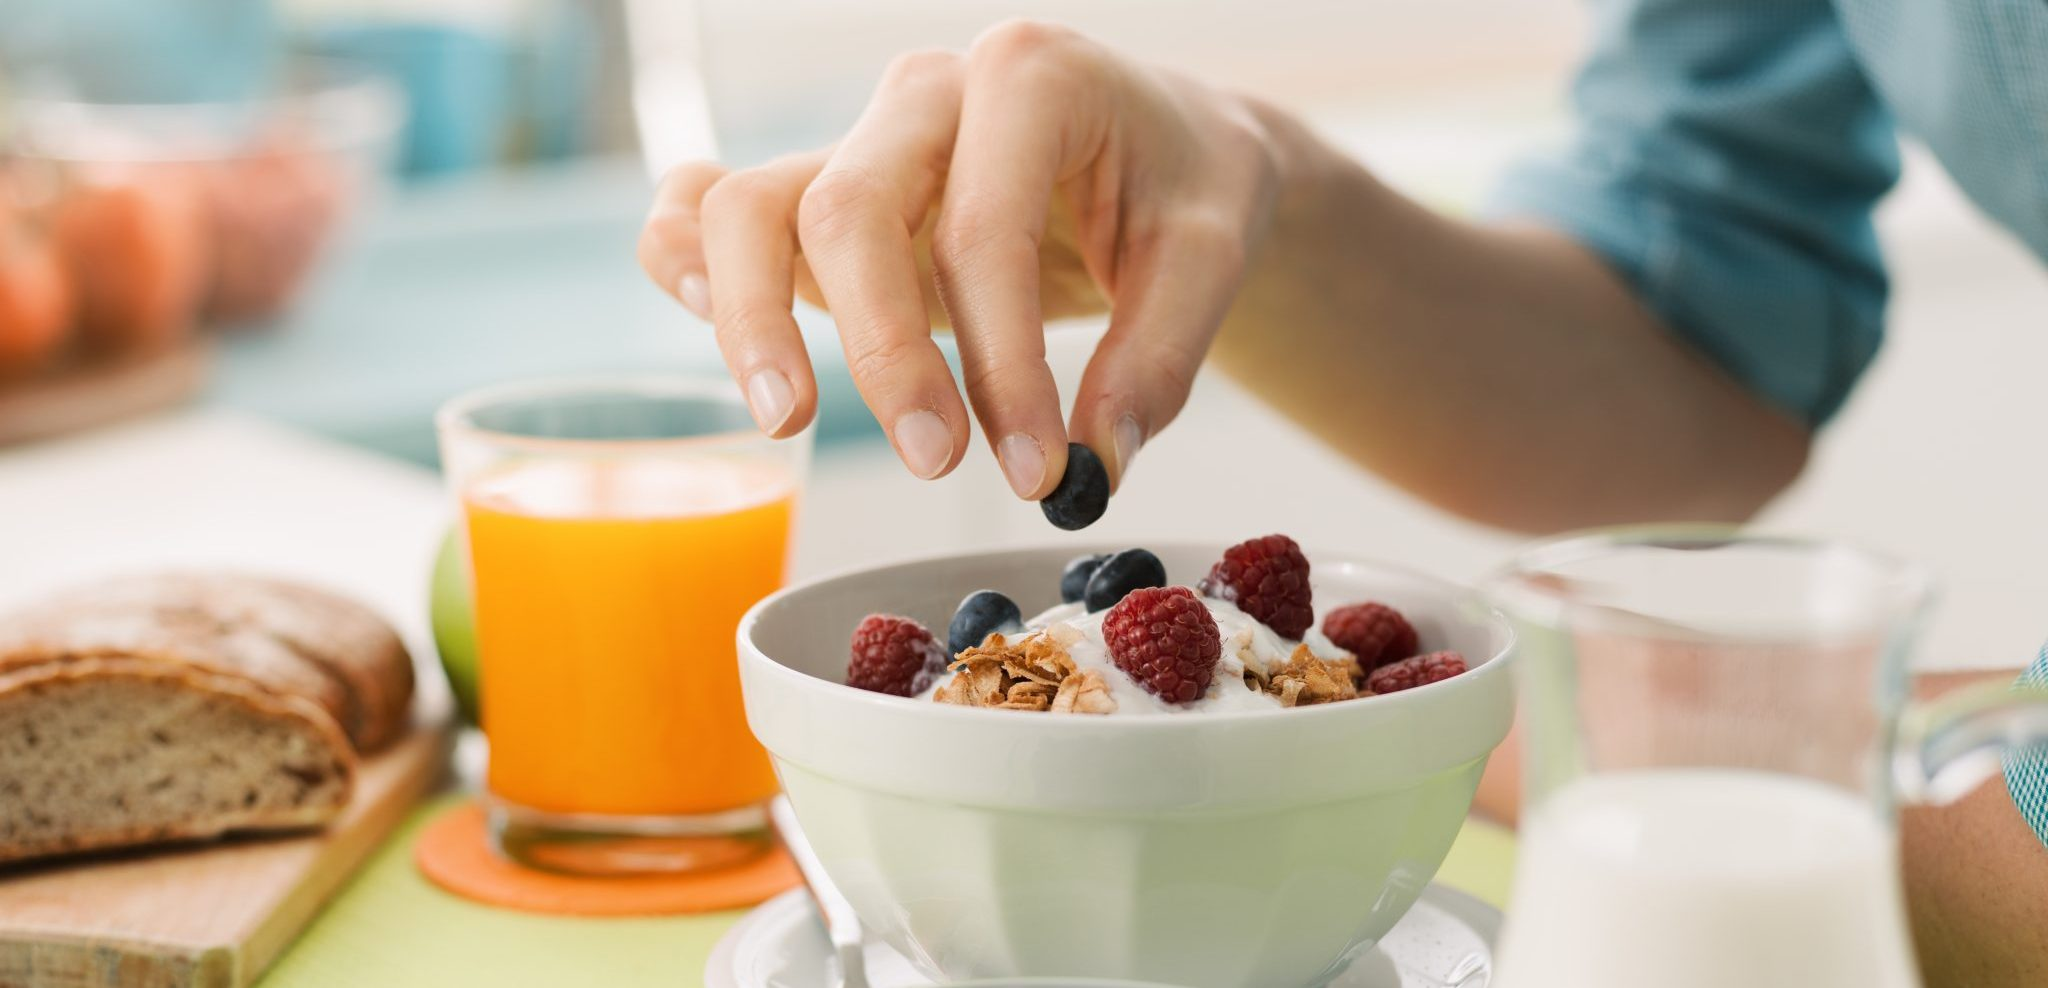 6 Best Sugar-Free Breakfast Ideas For Your Family